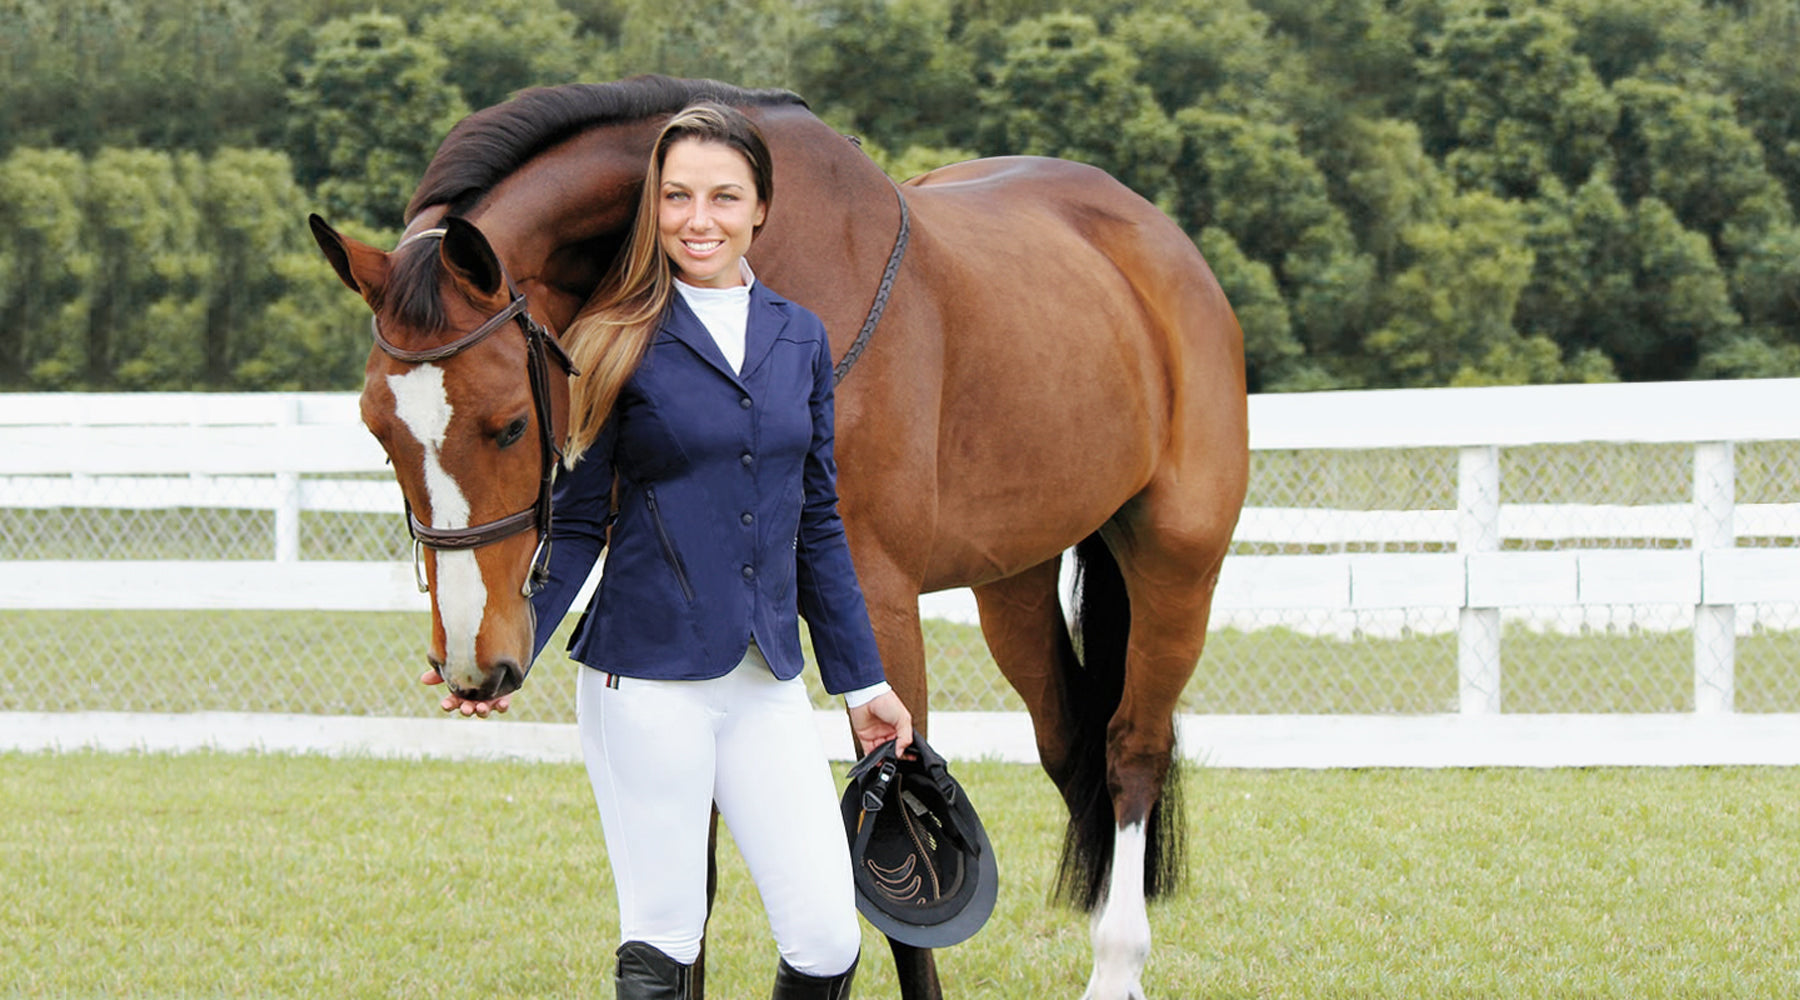 Equestrian Accessories - How to Add Your Own Touch in the Show Ring